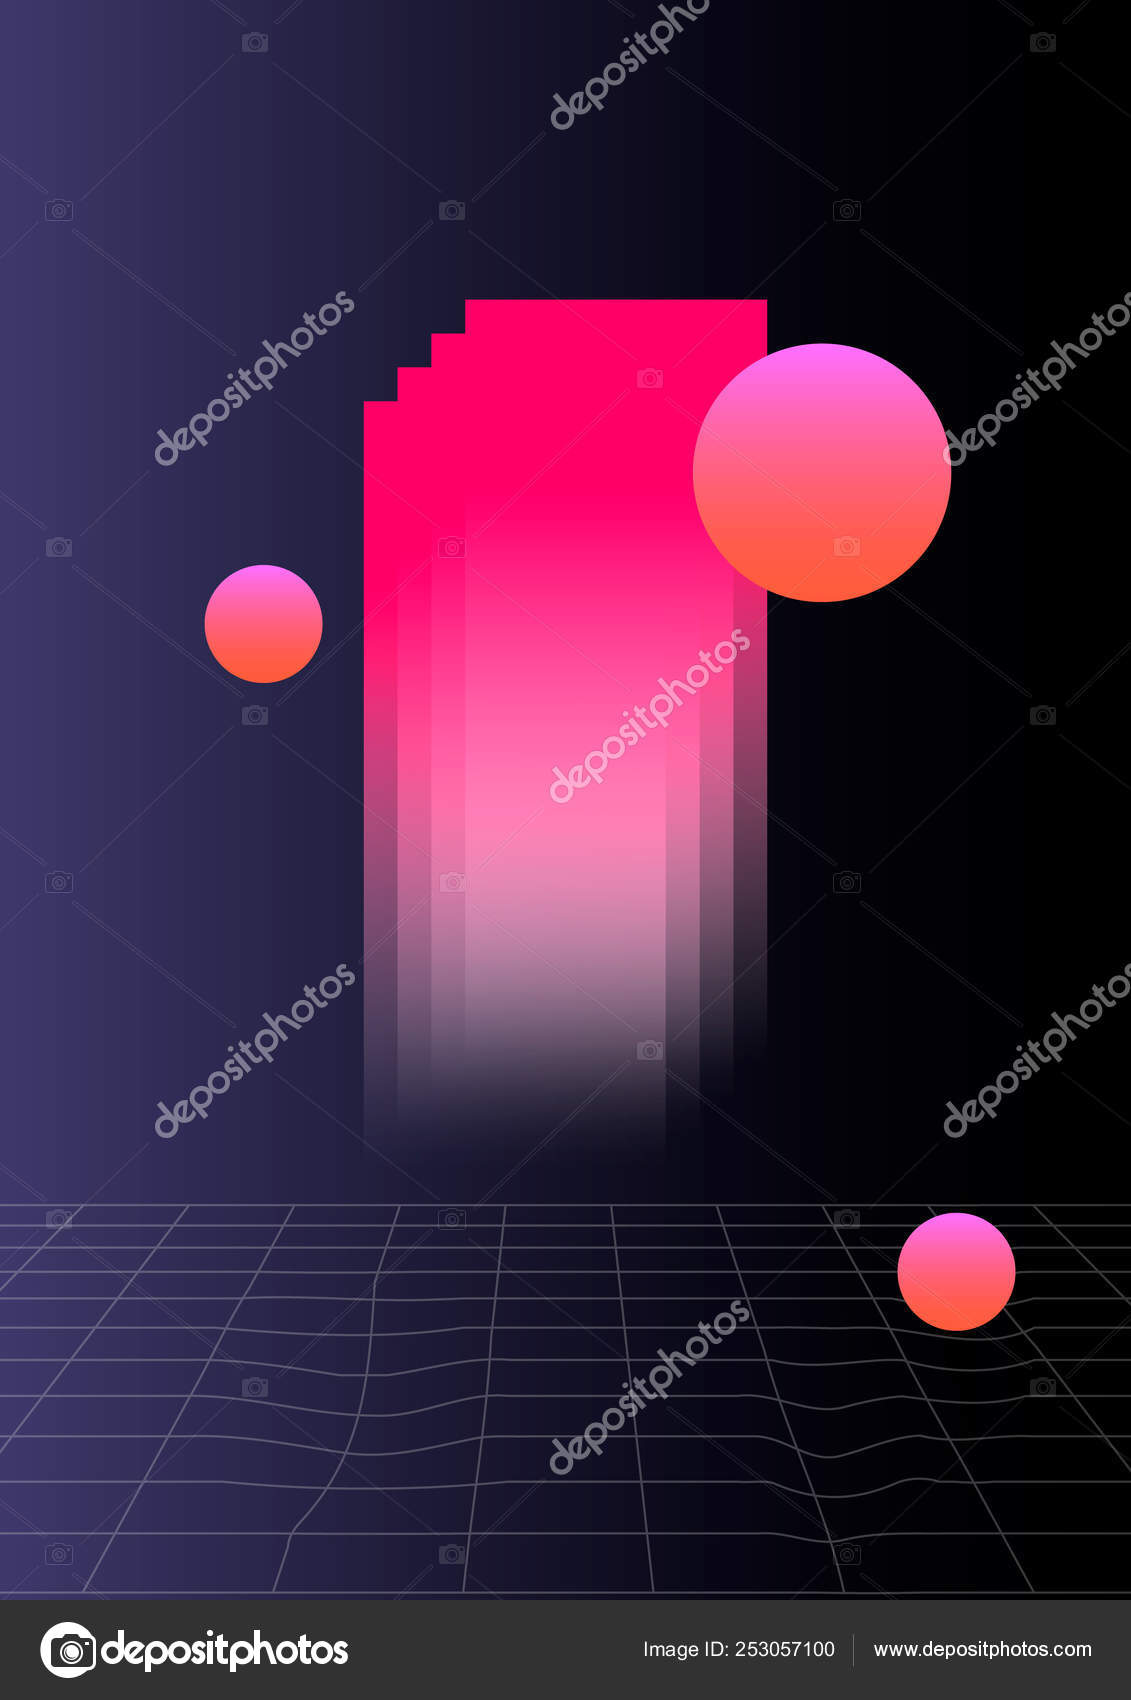 Abstract Shapes Composition On The Dark Background Vaporwave